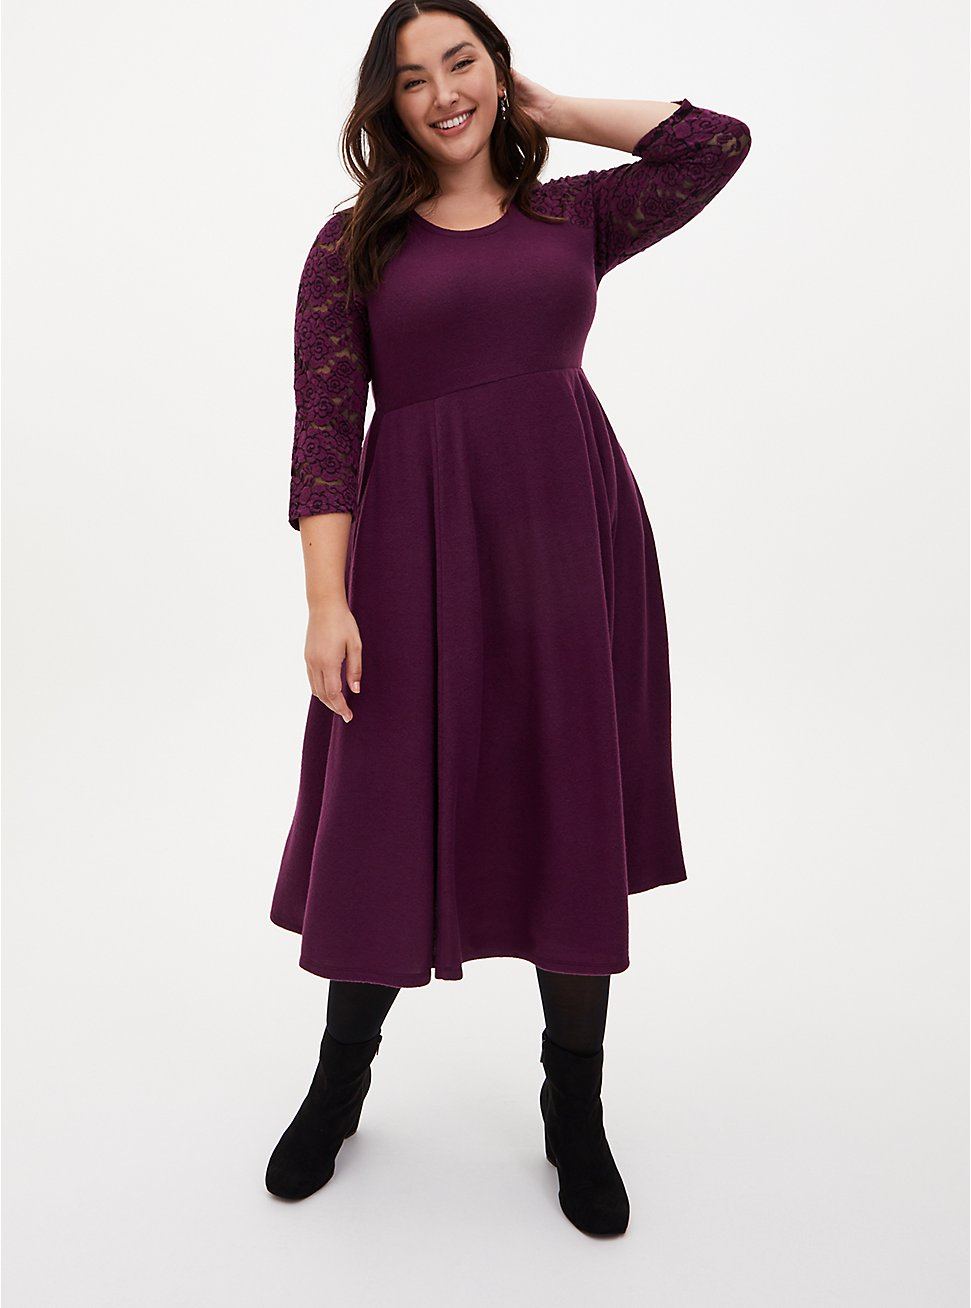 Super Soft Plush Purple Lace Skater Dress, POTENT PURPLE, hi-res